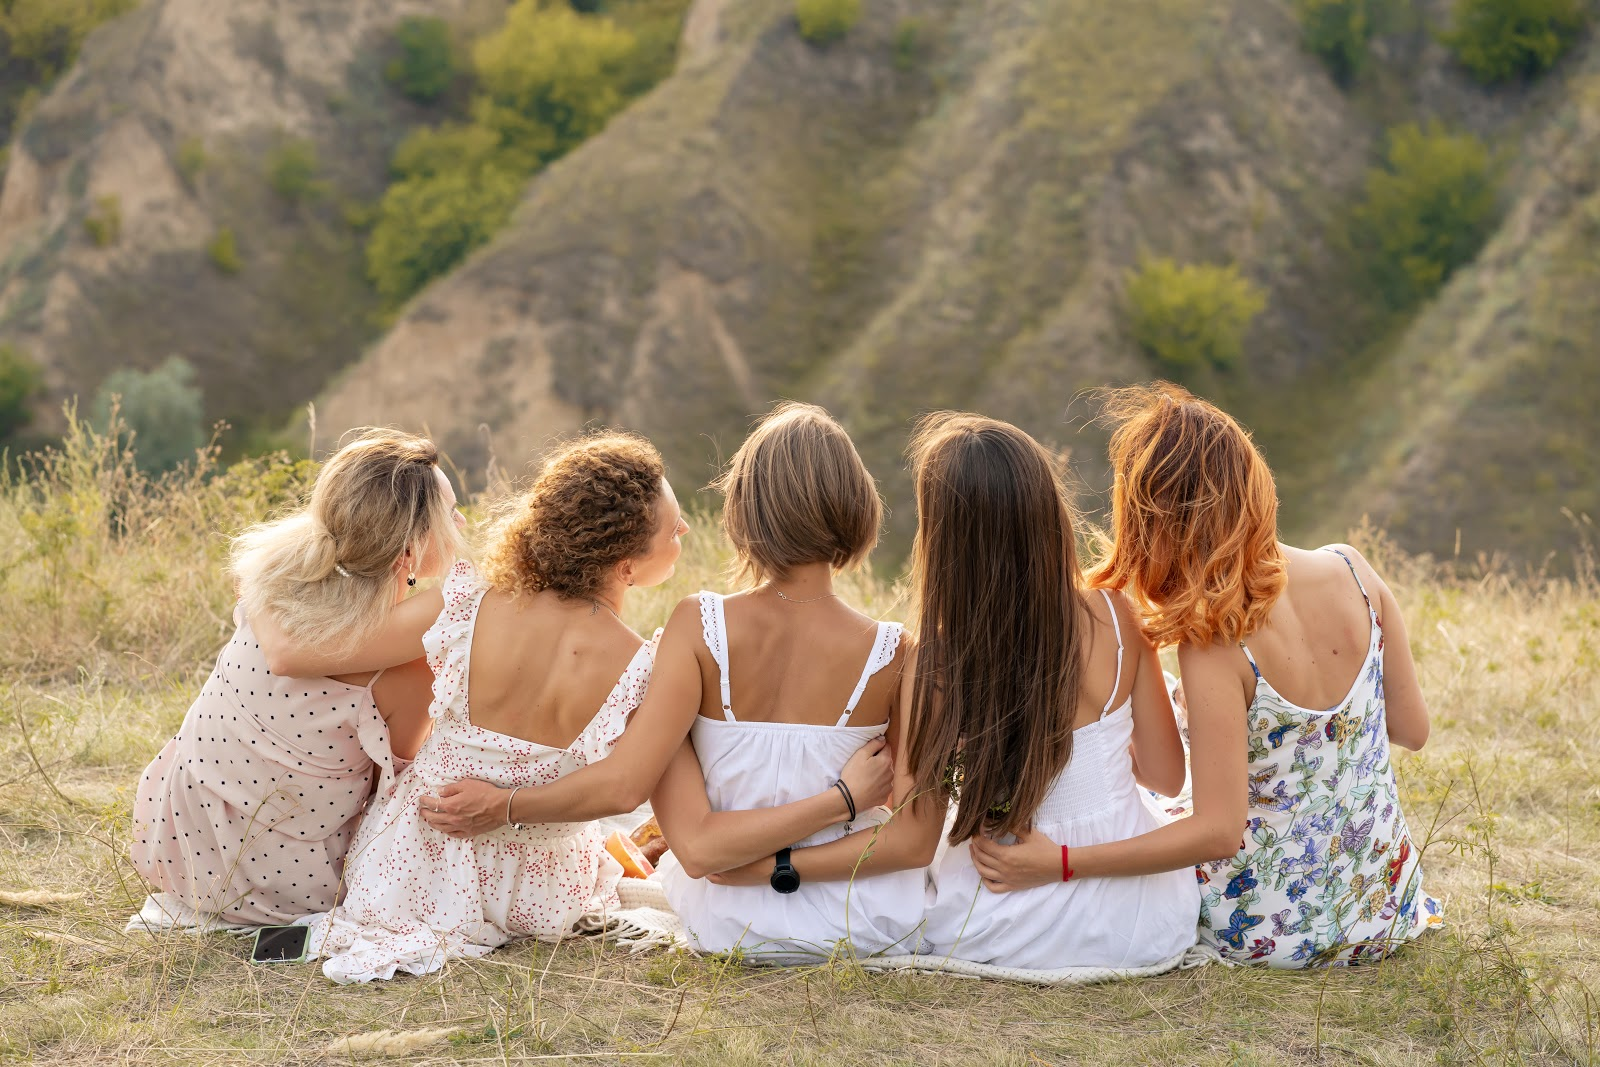 Bridal shower ideas: Five women sit on the grass wearing sun dresses